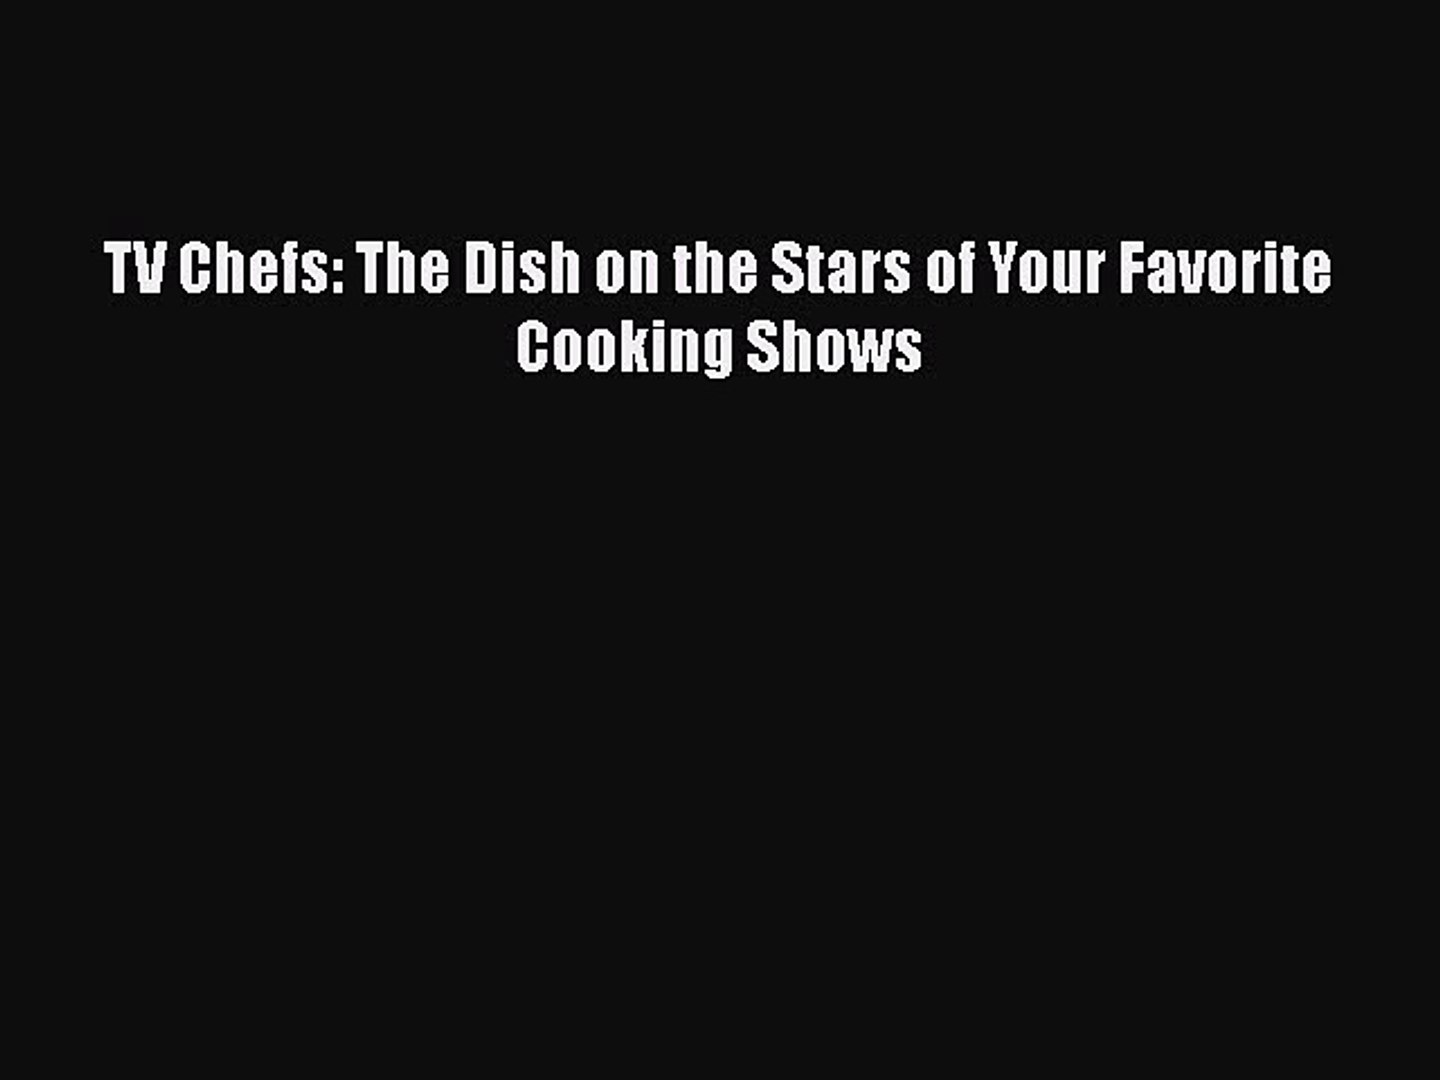 [PDF] TV Chefs: The Dish on the Stars of Your Favorite Cooking Shows [Read] Online